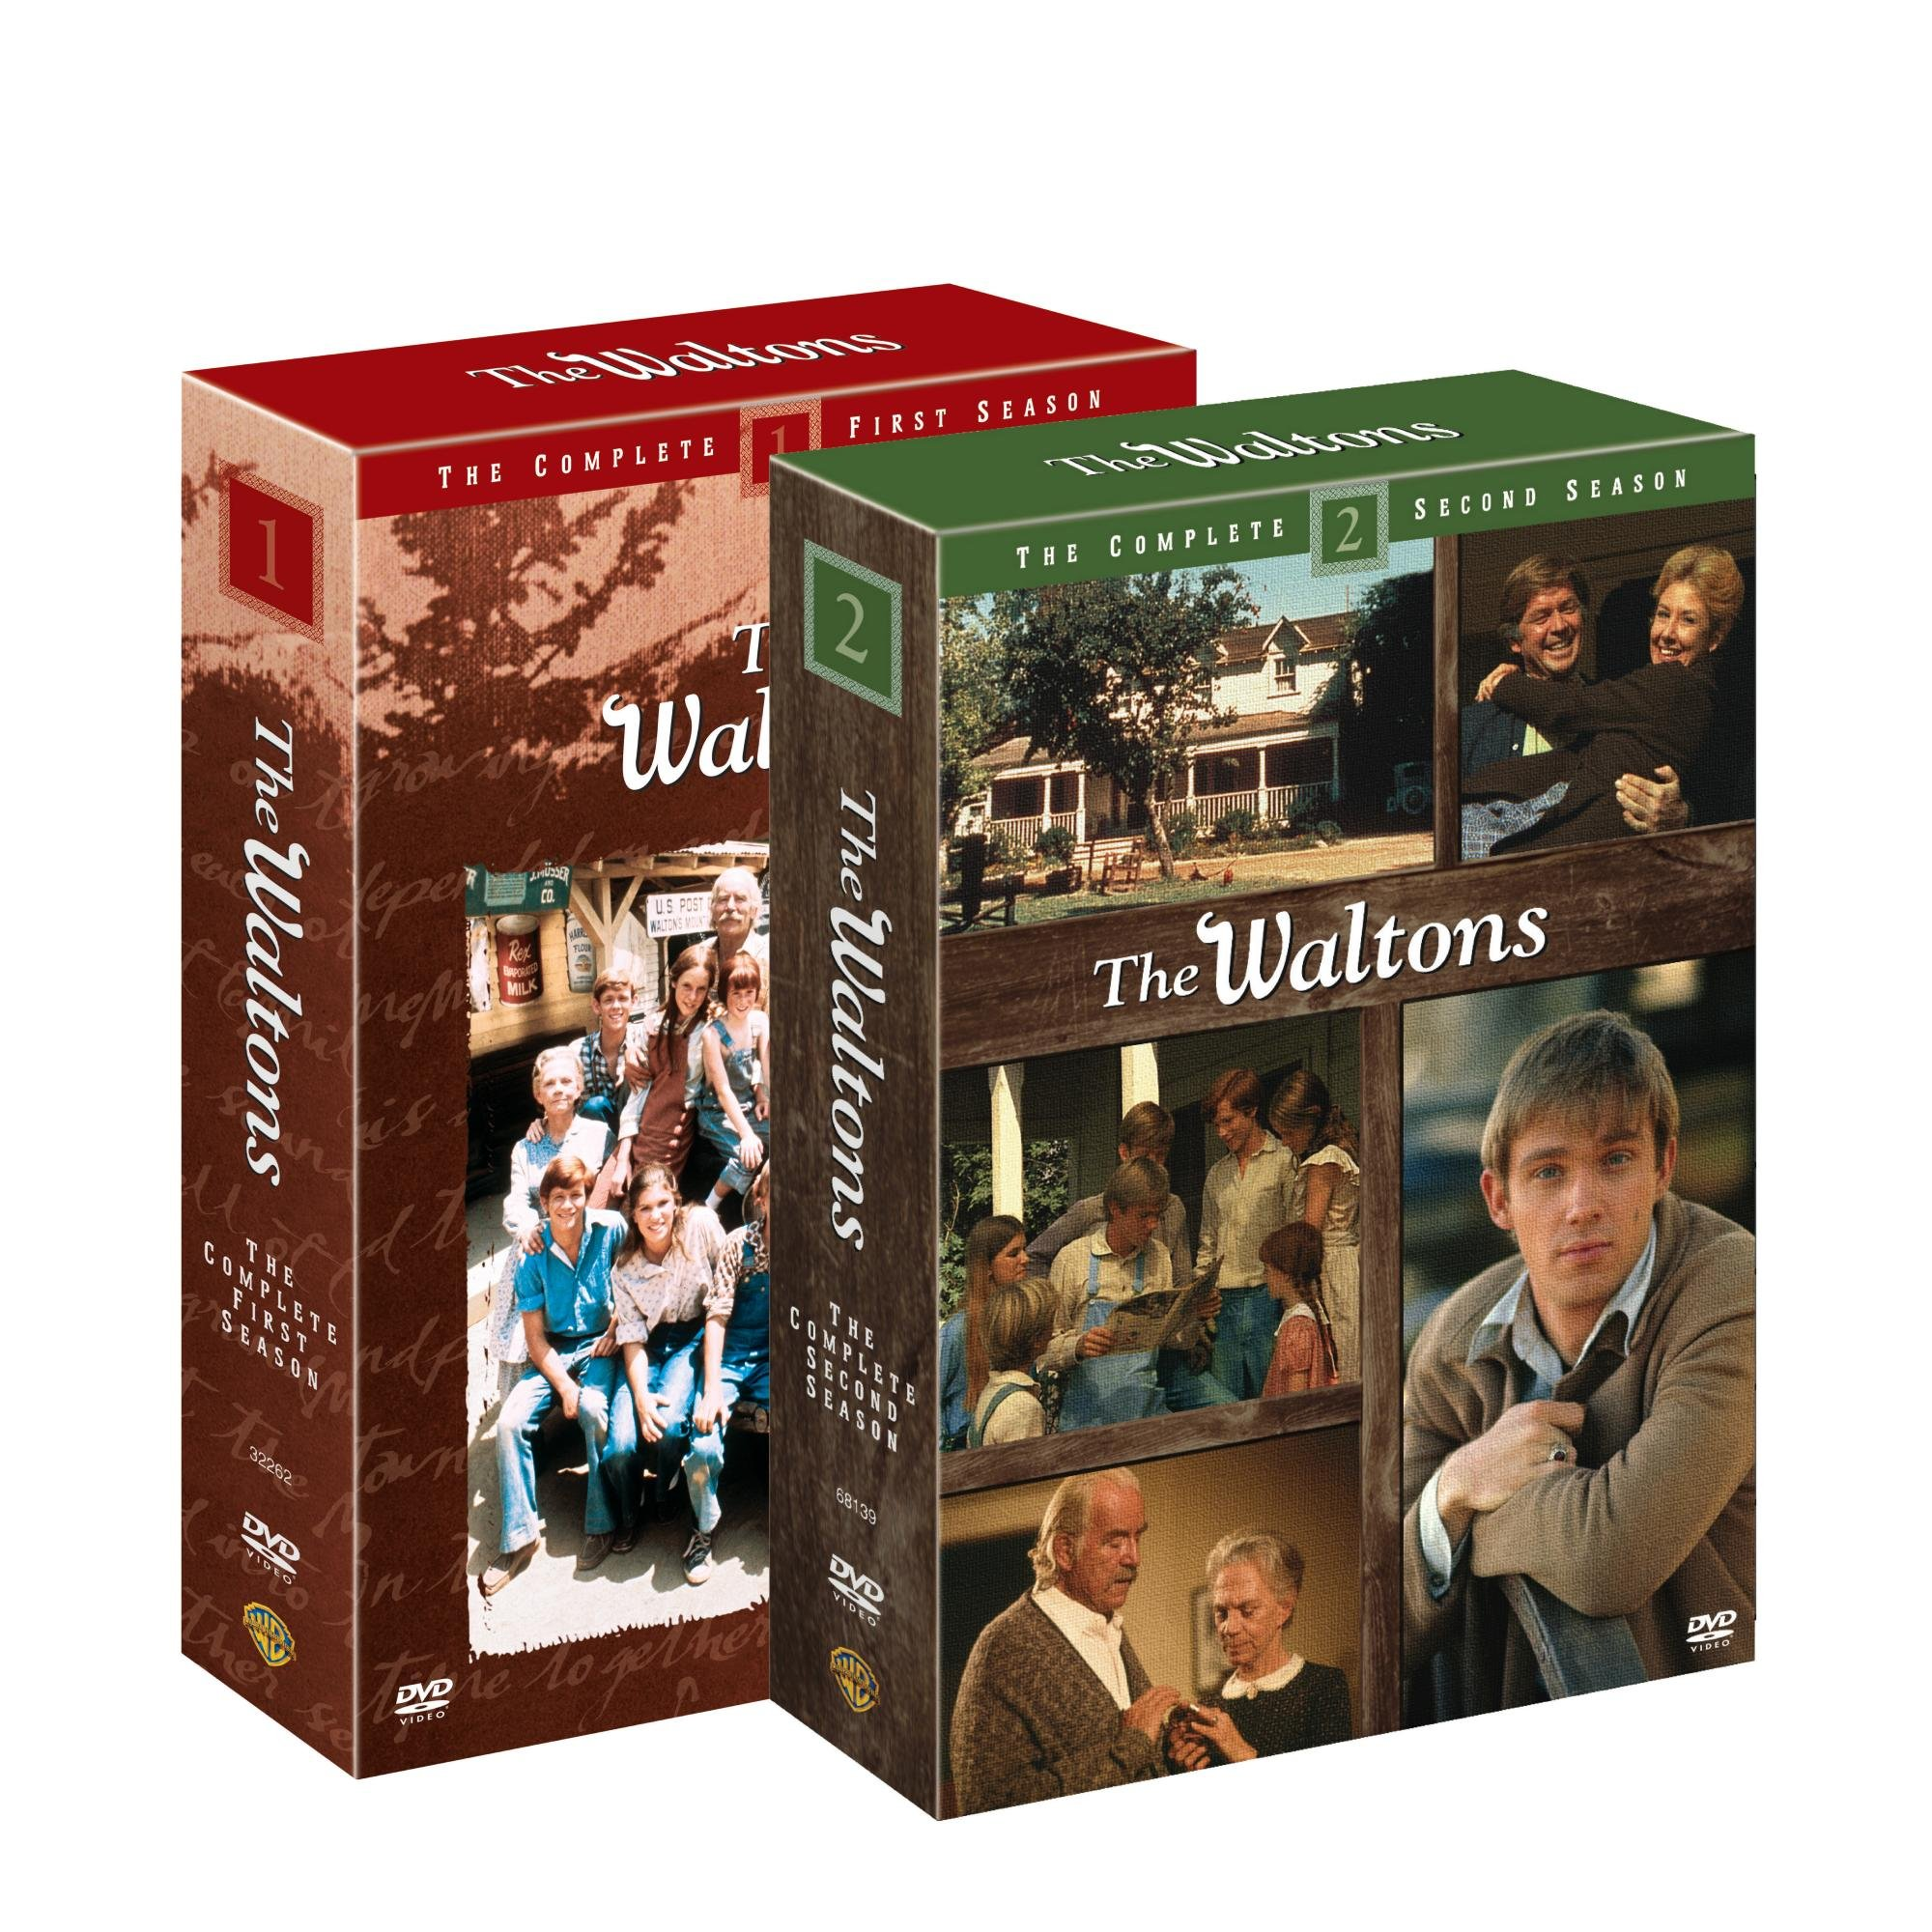 DVD : The Waltons: The Complete Seasons 1 & 2 (Shrink Wrapped, Boxed Set, Side By Side Packaging, Repackaged, 2 Pack)